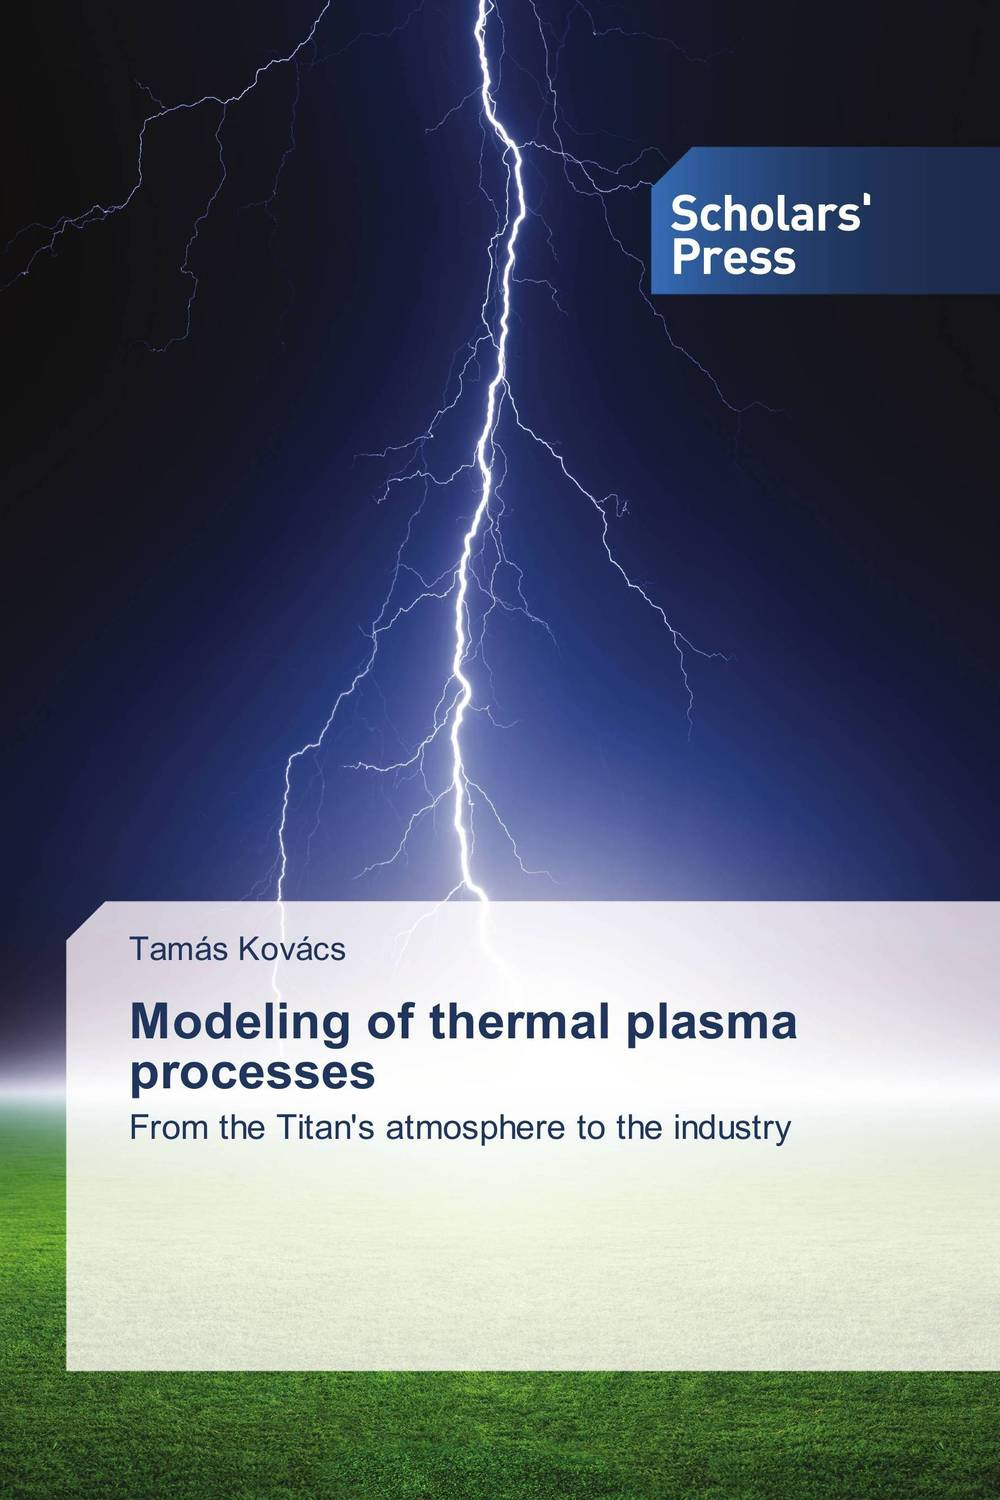 Modeling of thermal plasma processes